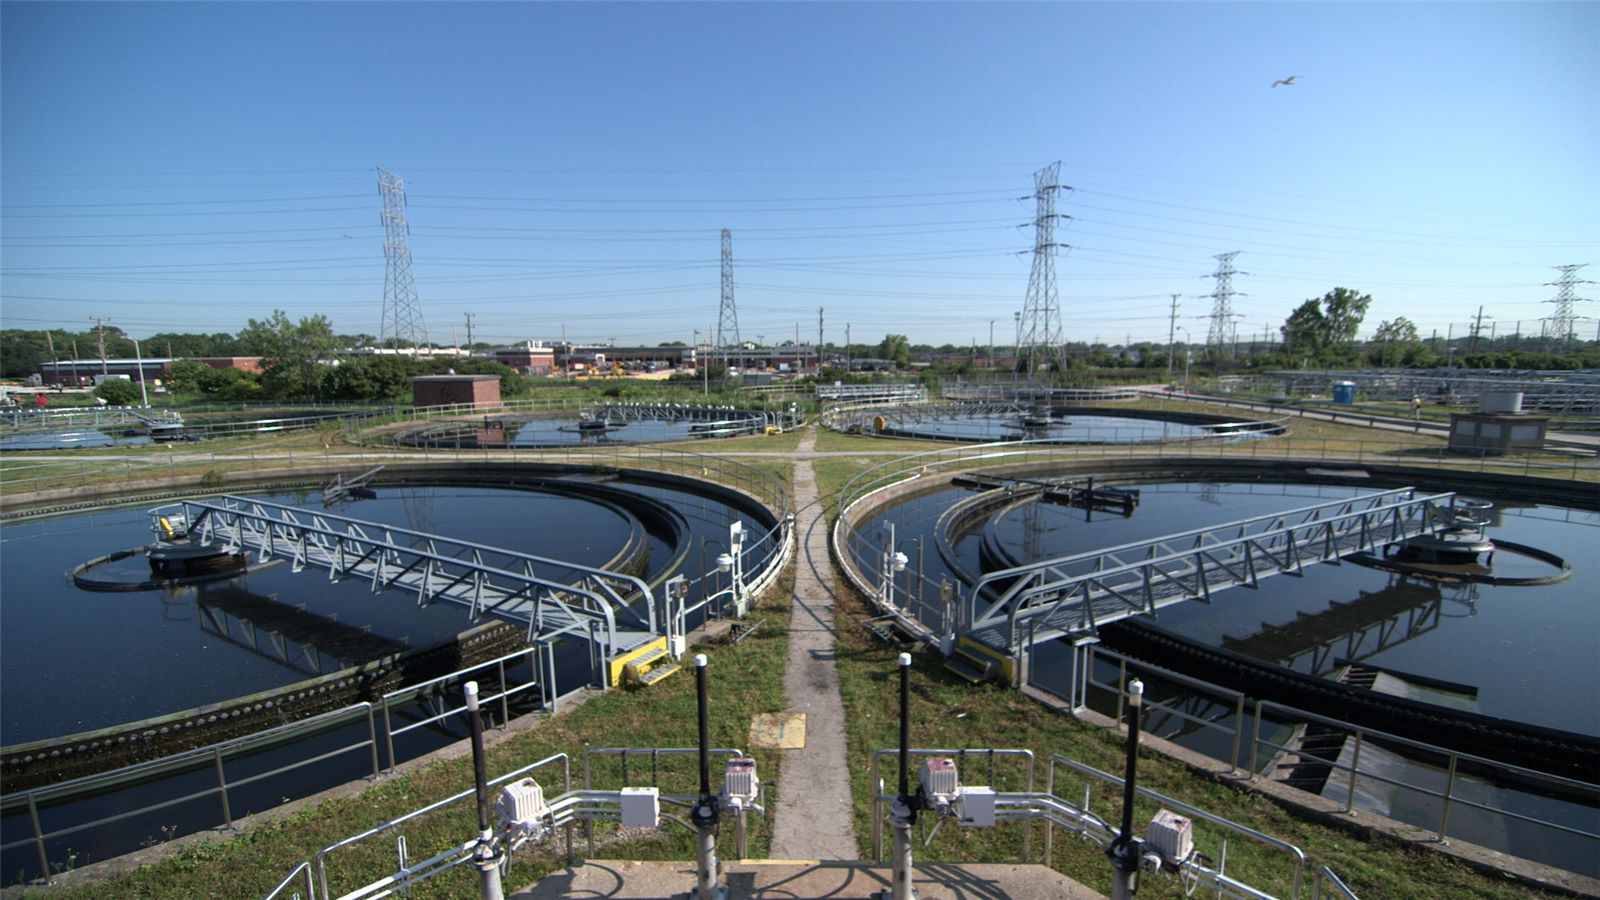 Chicago Metropitan water reclamation